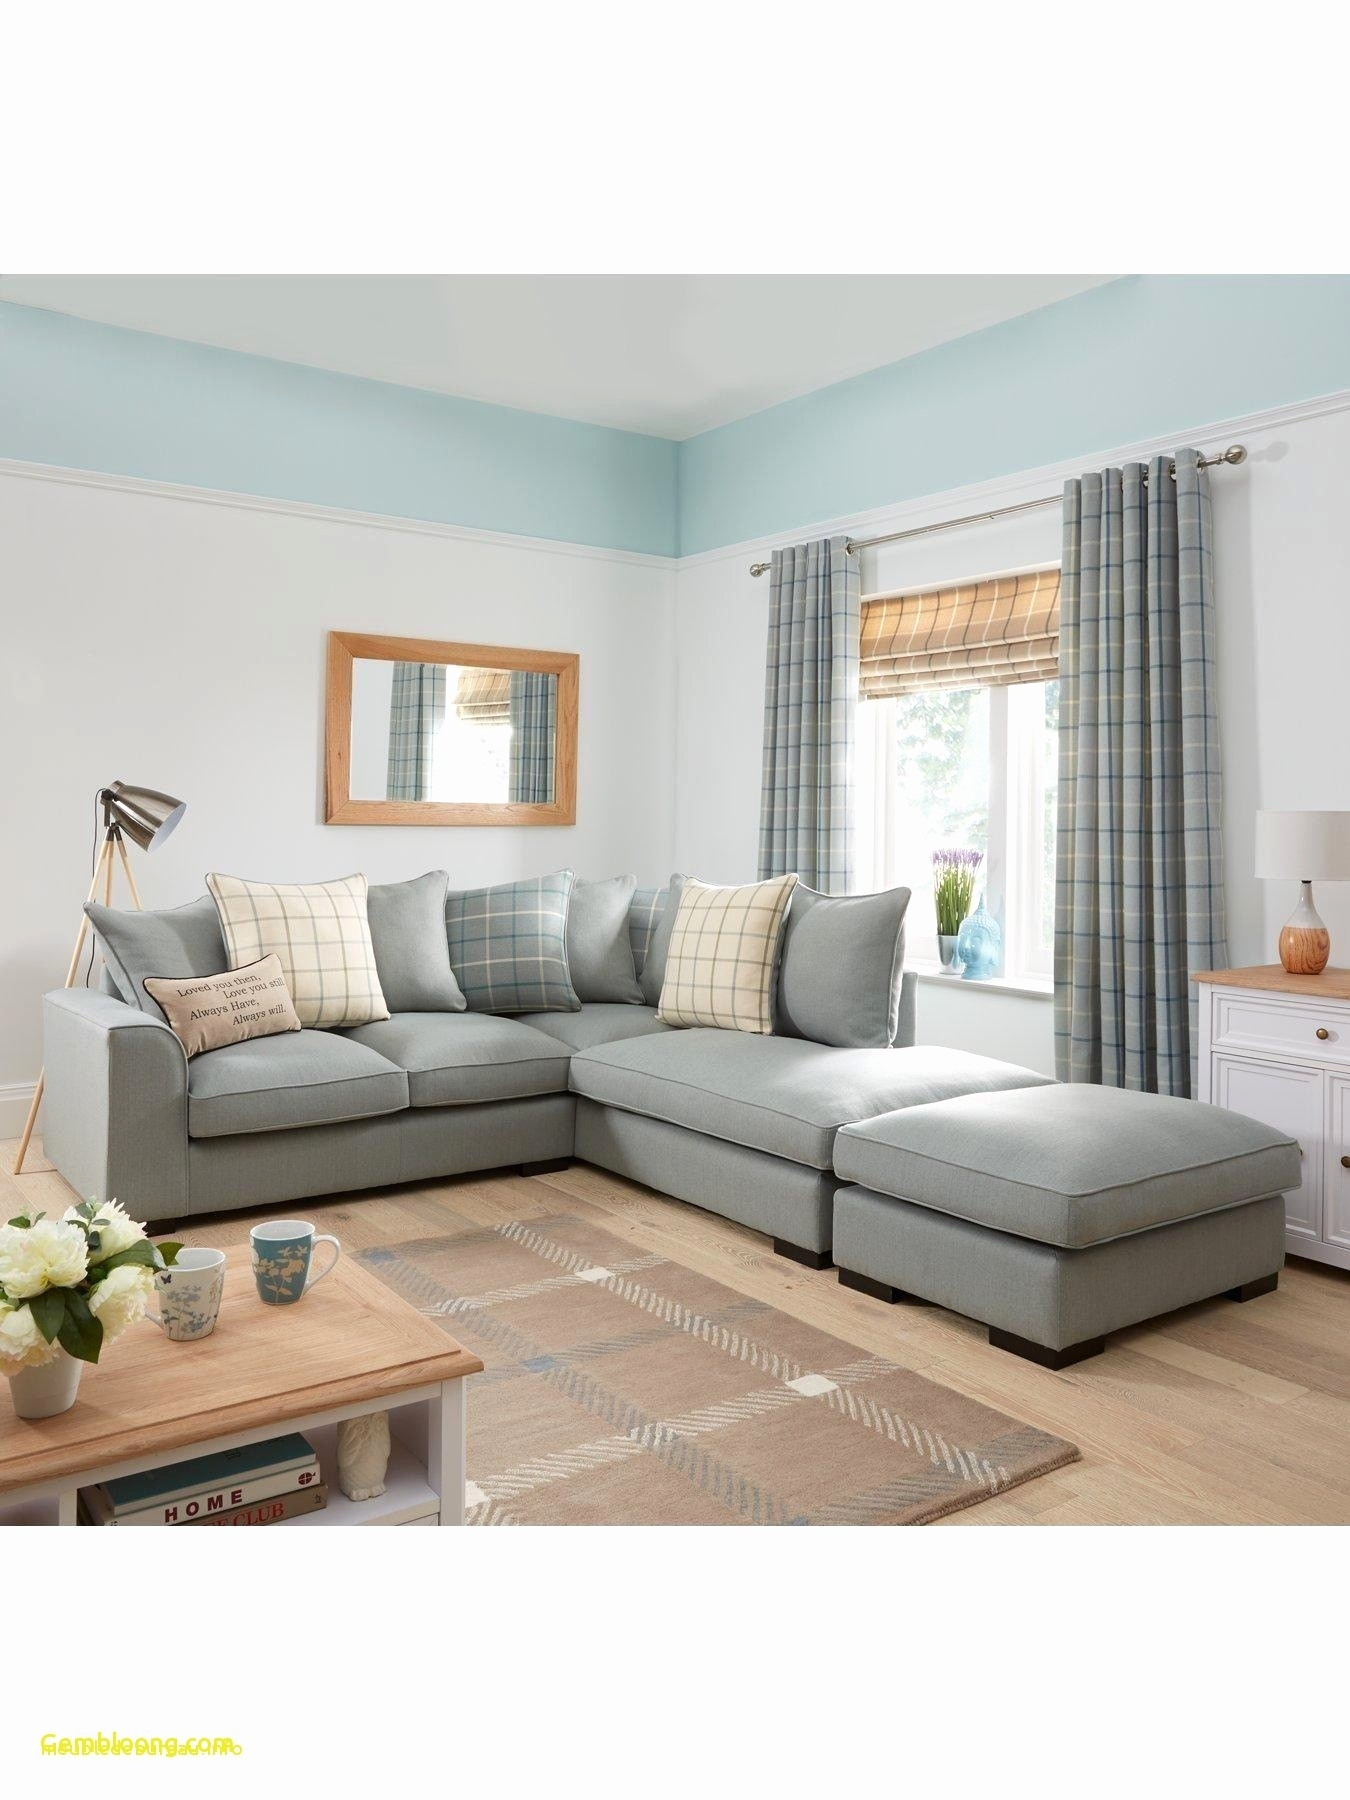 13 Living Room With Chaise Design Outstanding Furniture Accrington inside Aquarius Light Grey 2 Piece Sectionals With Raf Chaise (Image 1 of 30)